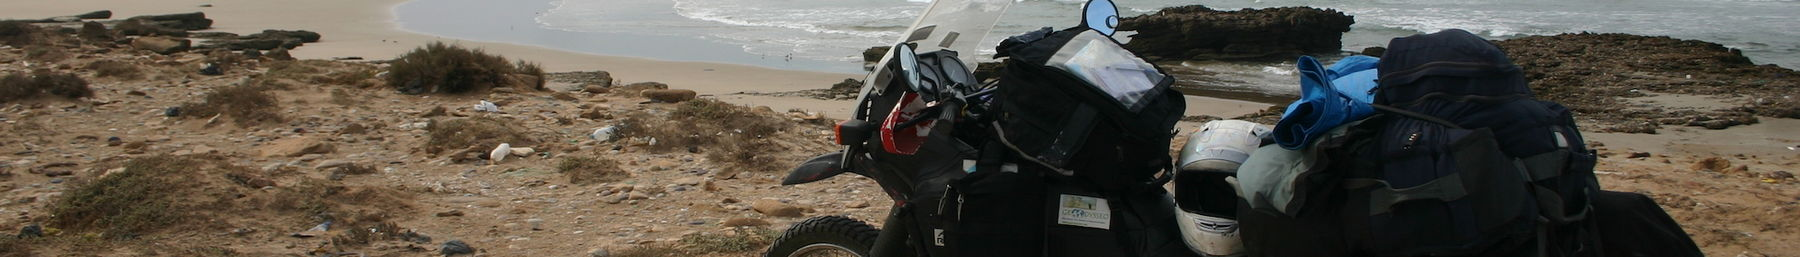 Motorcycle Touring Morocco cropped.jpg